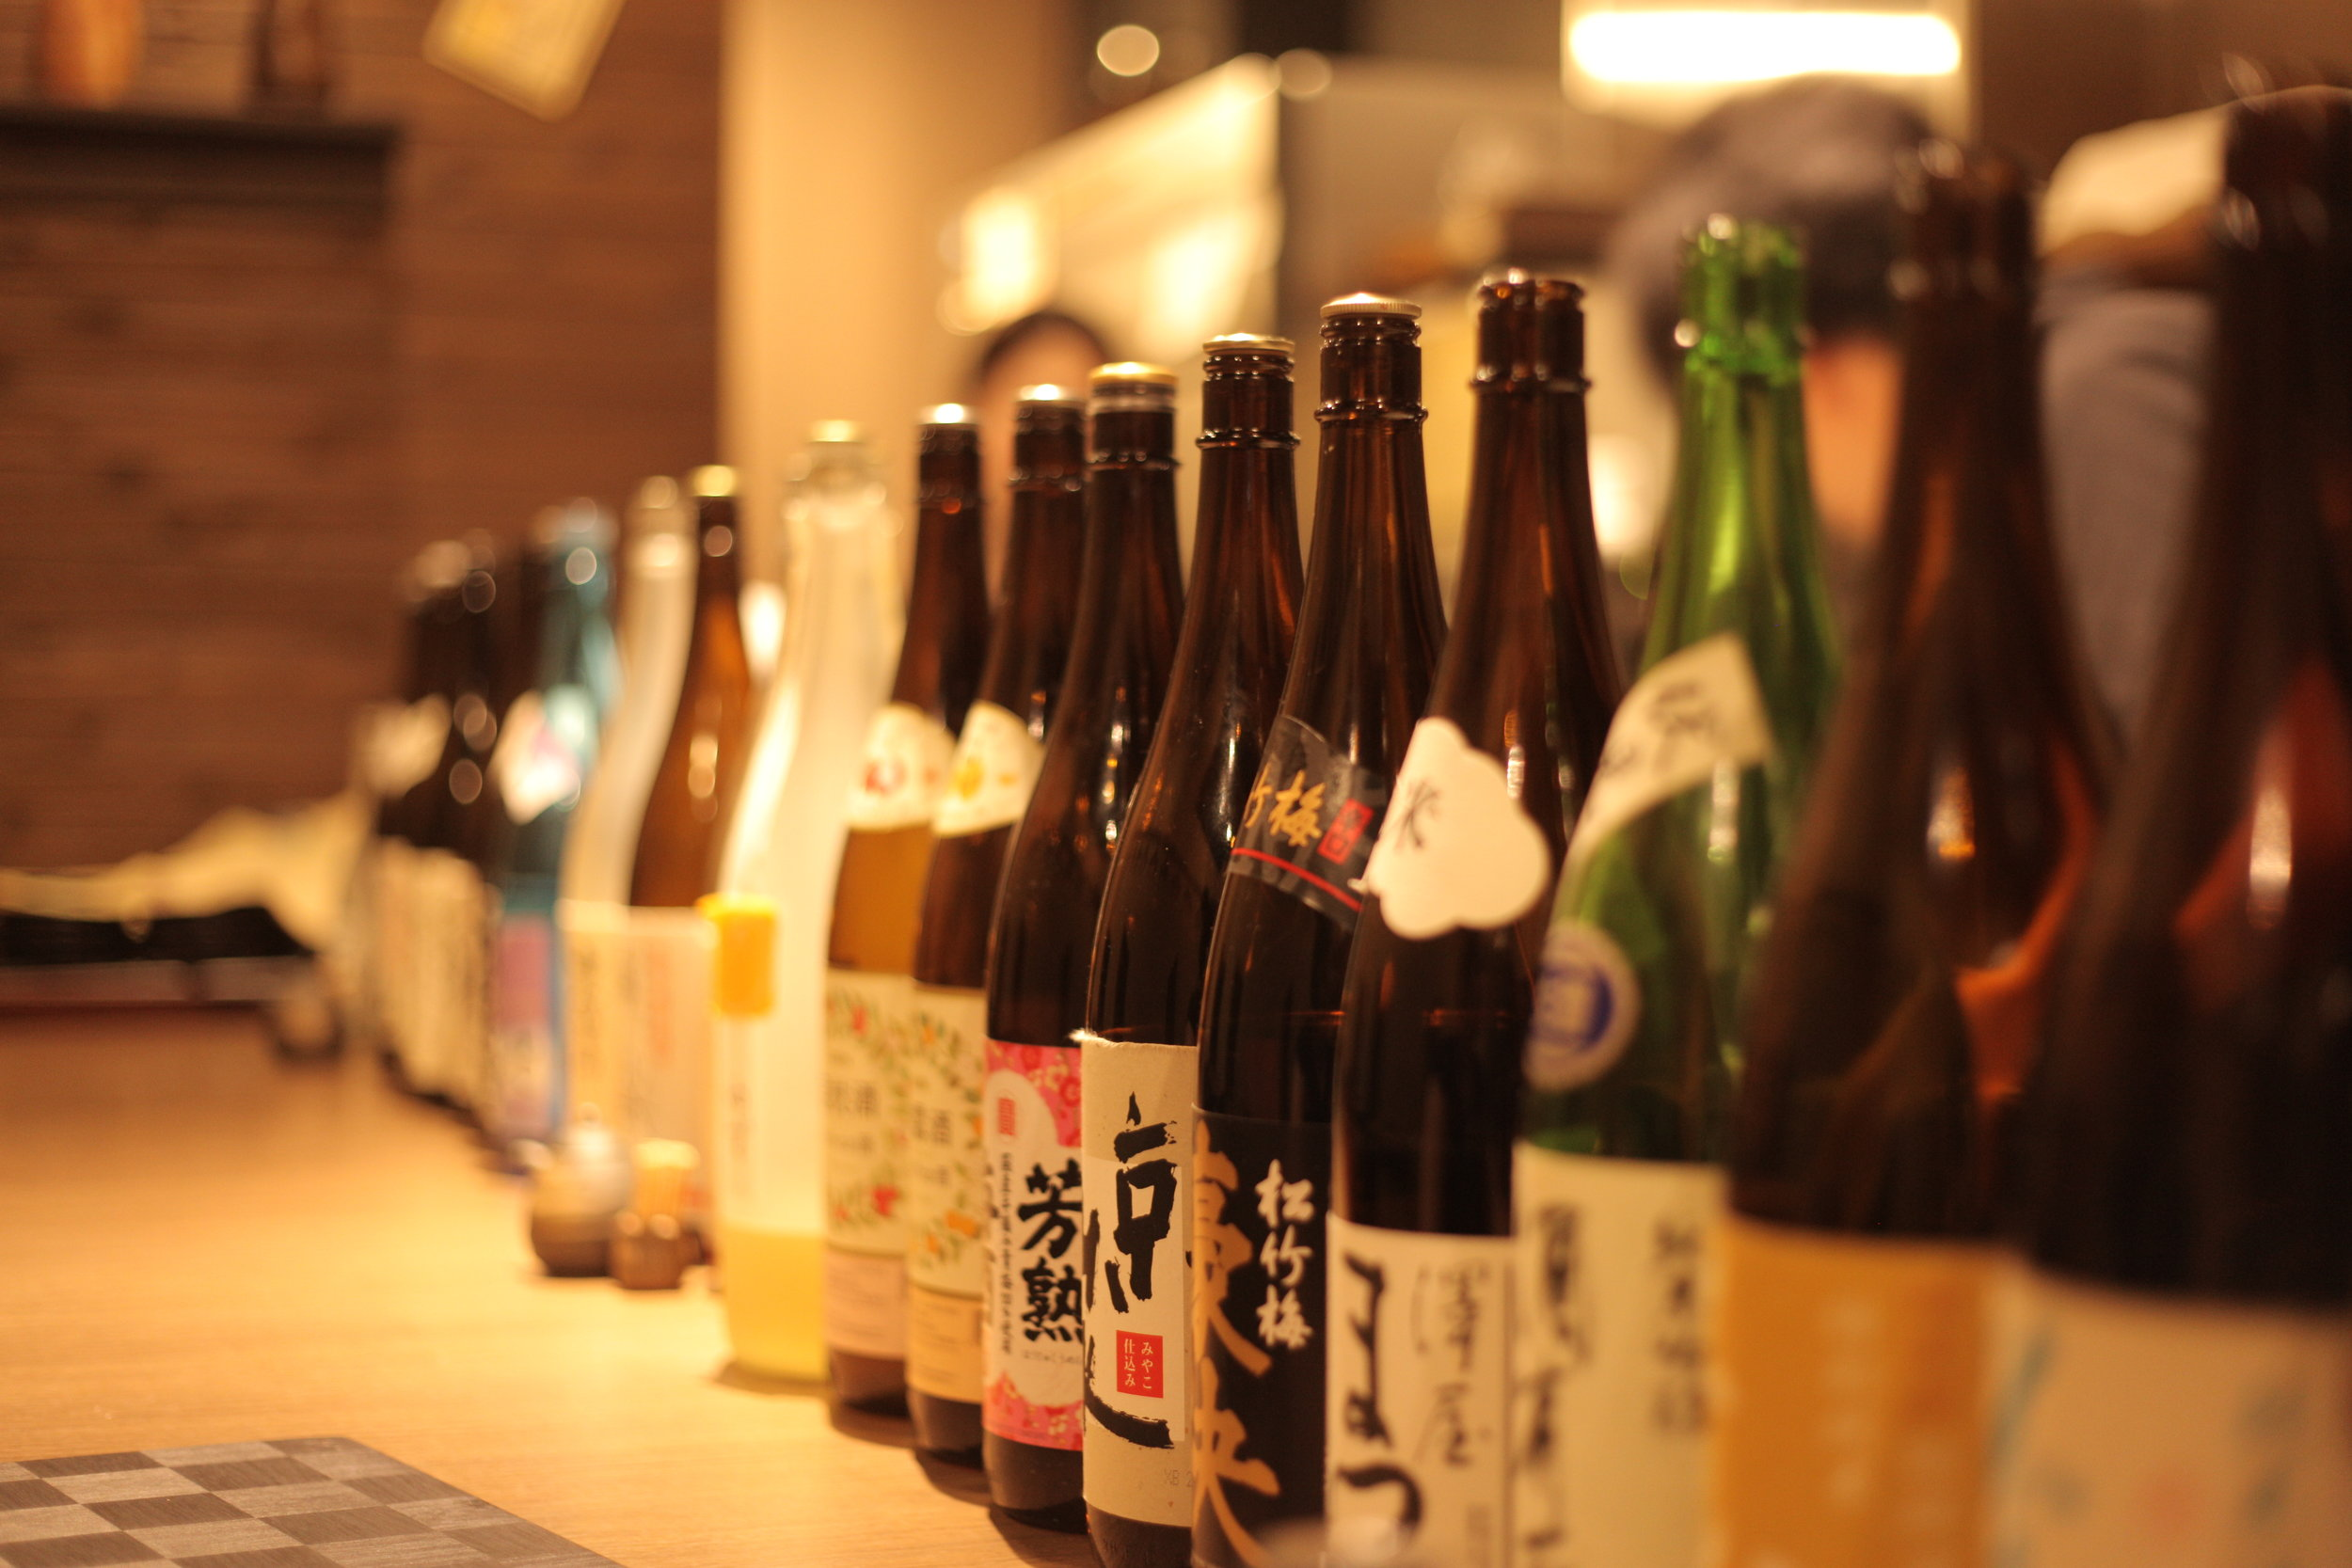 Over 80 different bottles of sake are open at any time for tasting